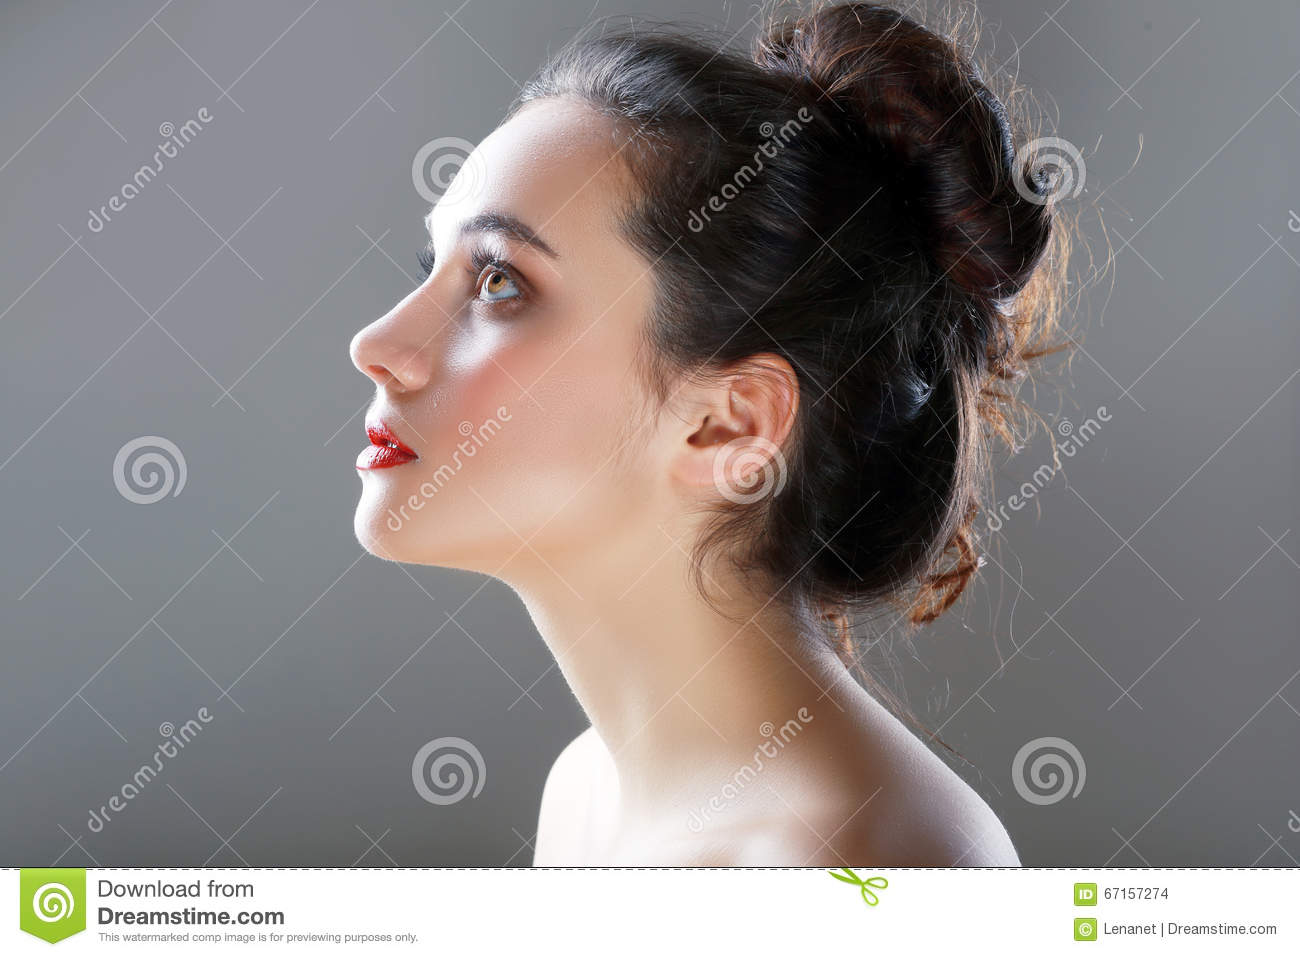 Profile view girl